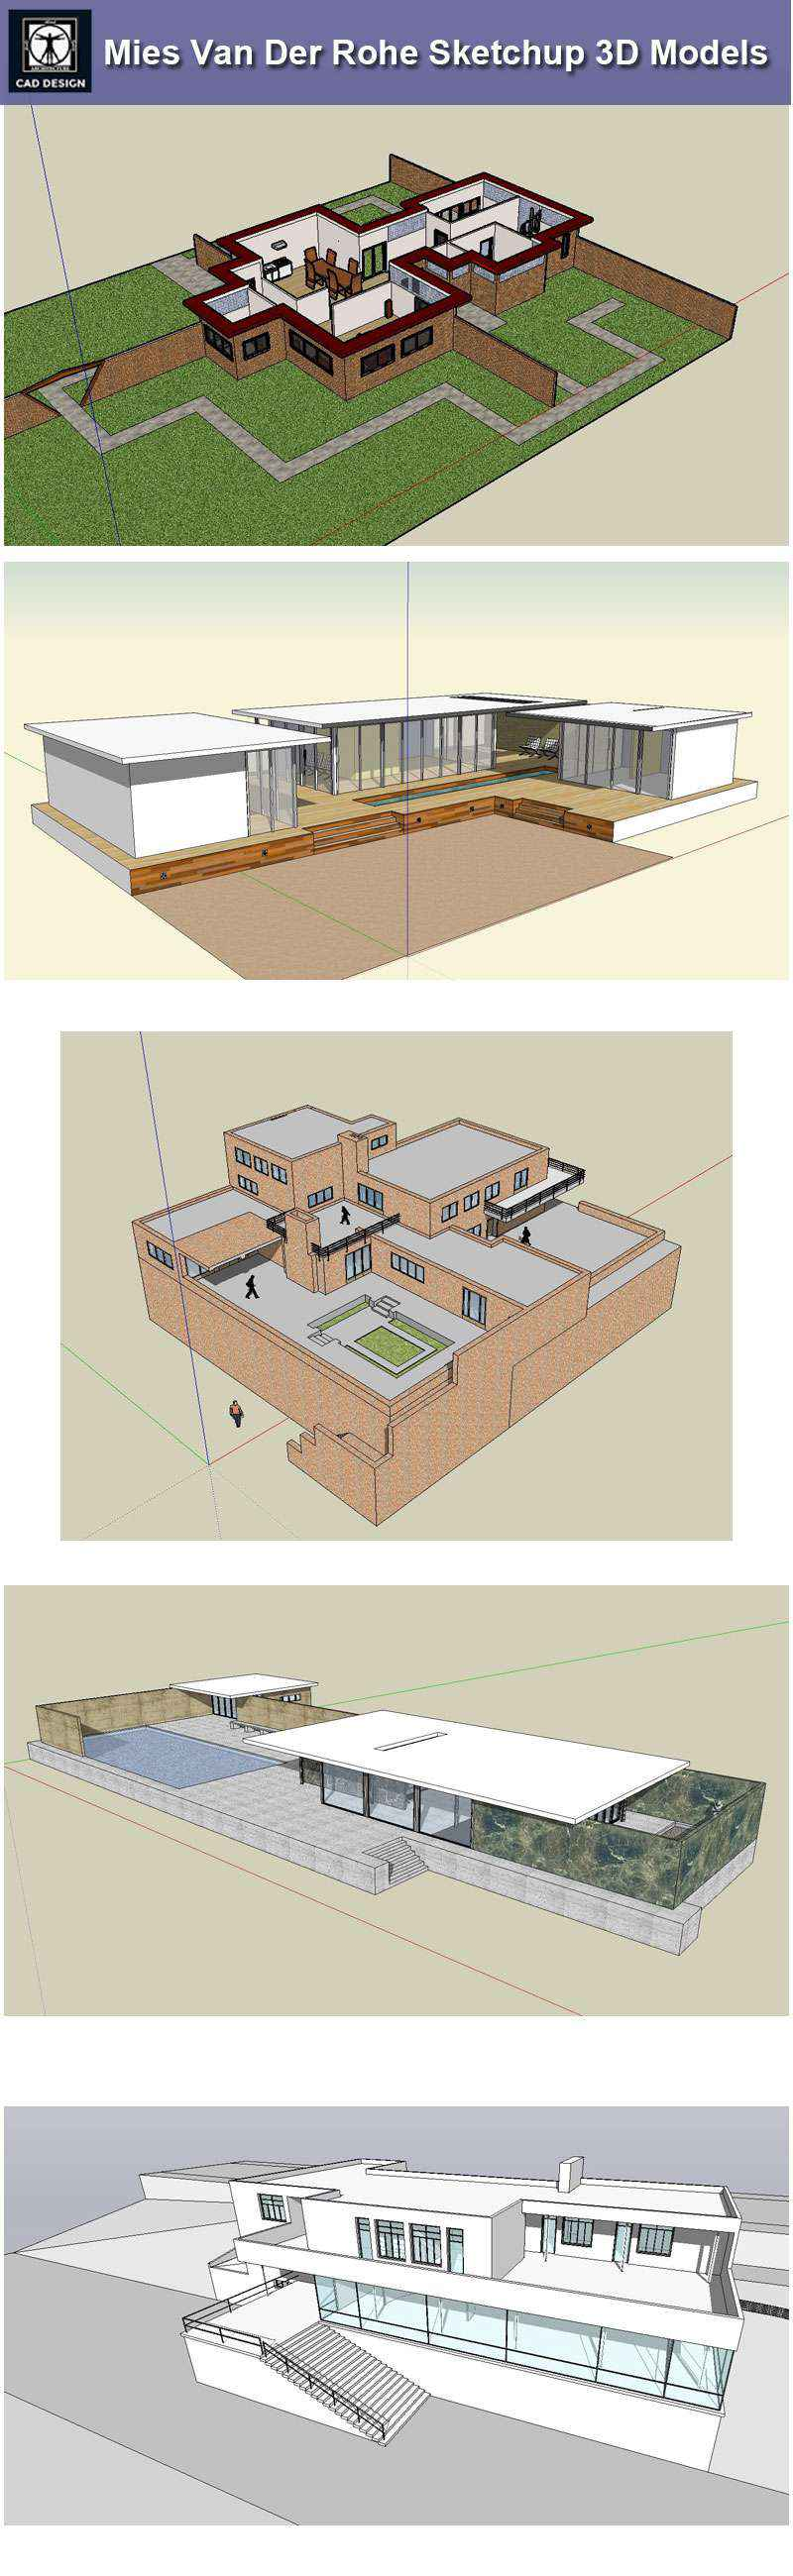 17 Projects Of Mies Van Der Rohe Architecture Sketchup 3d Models  # Muebles Mies Van Der Rohe Autocad